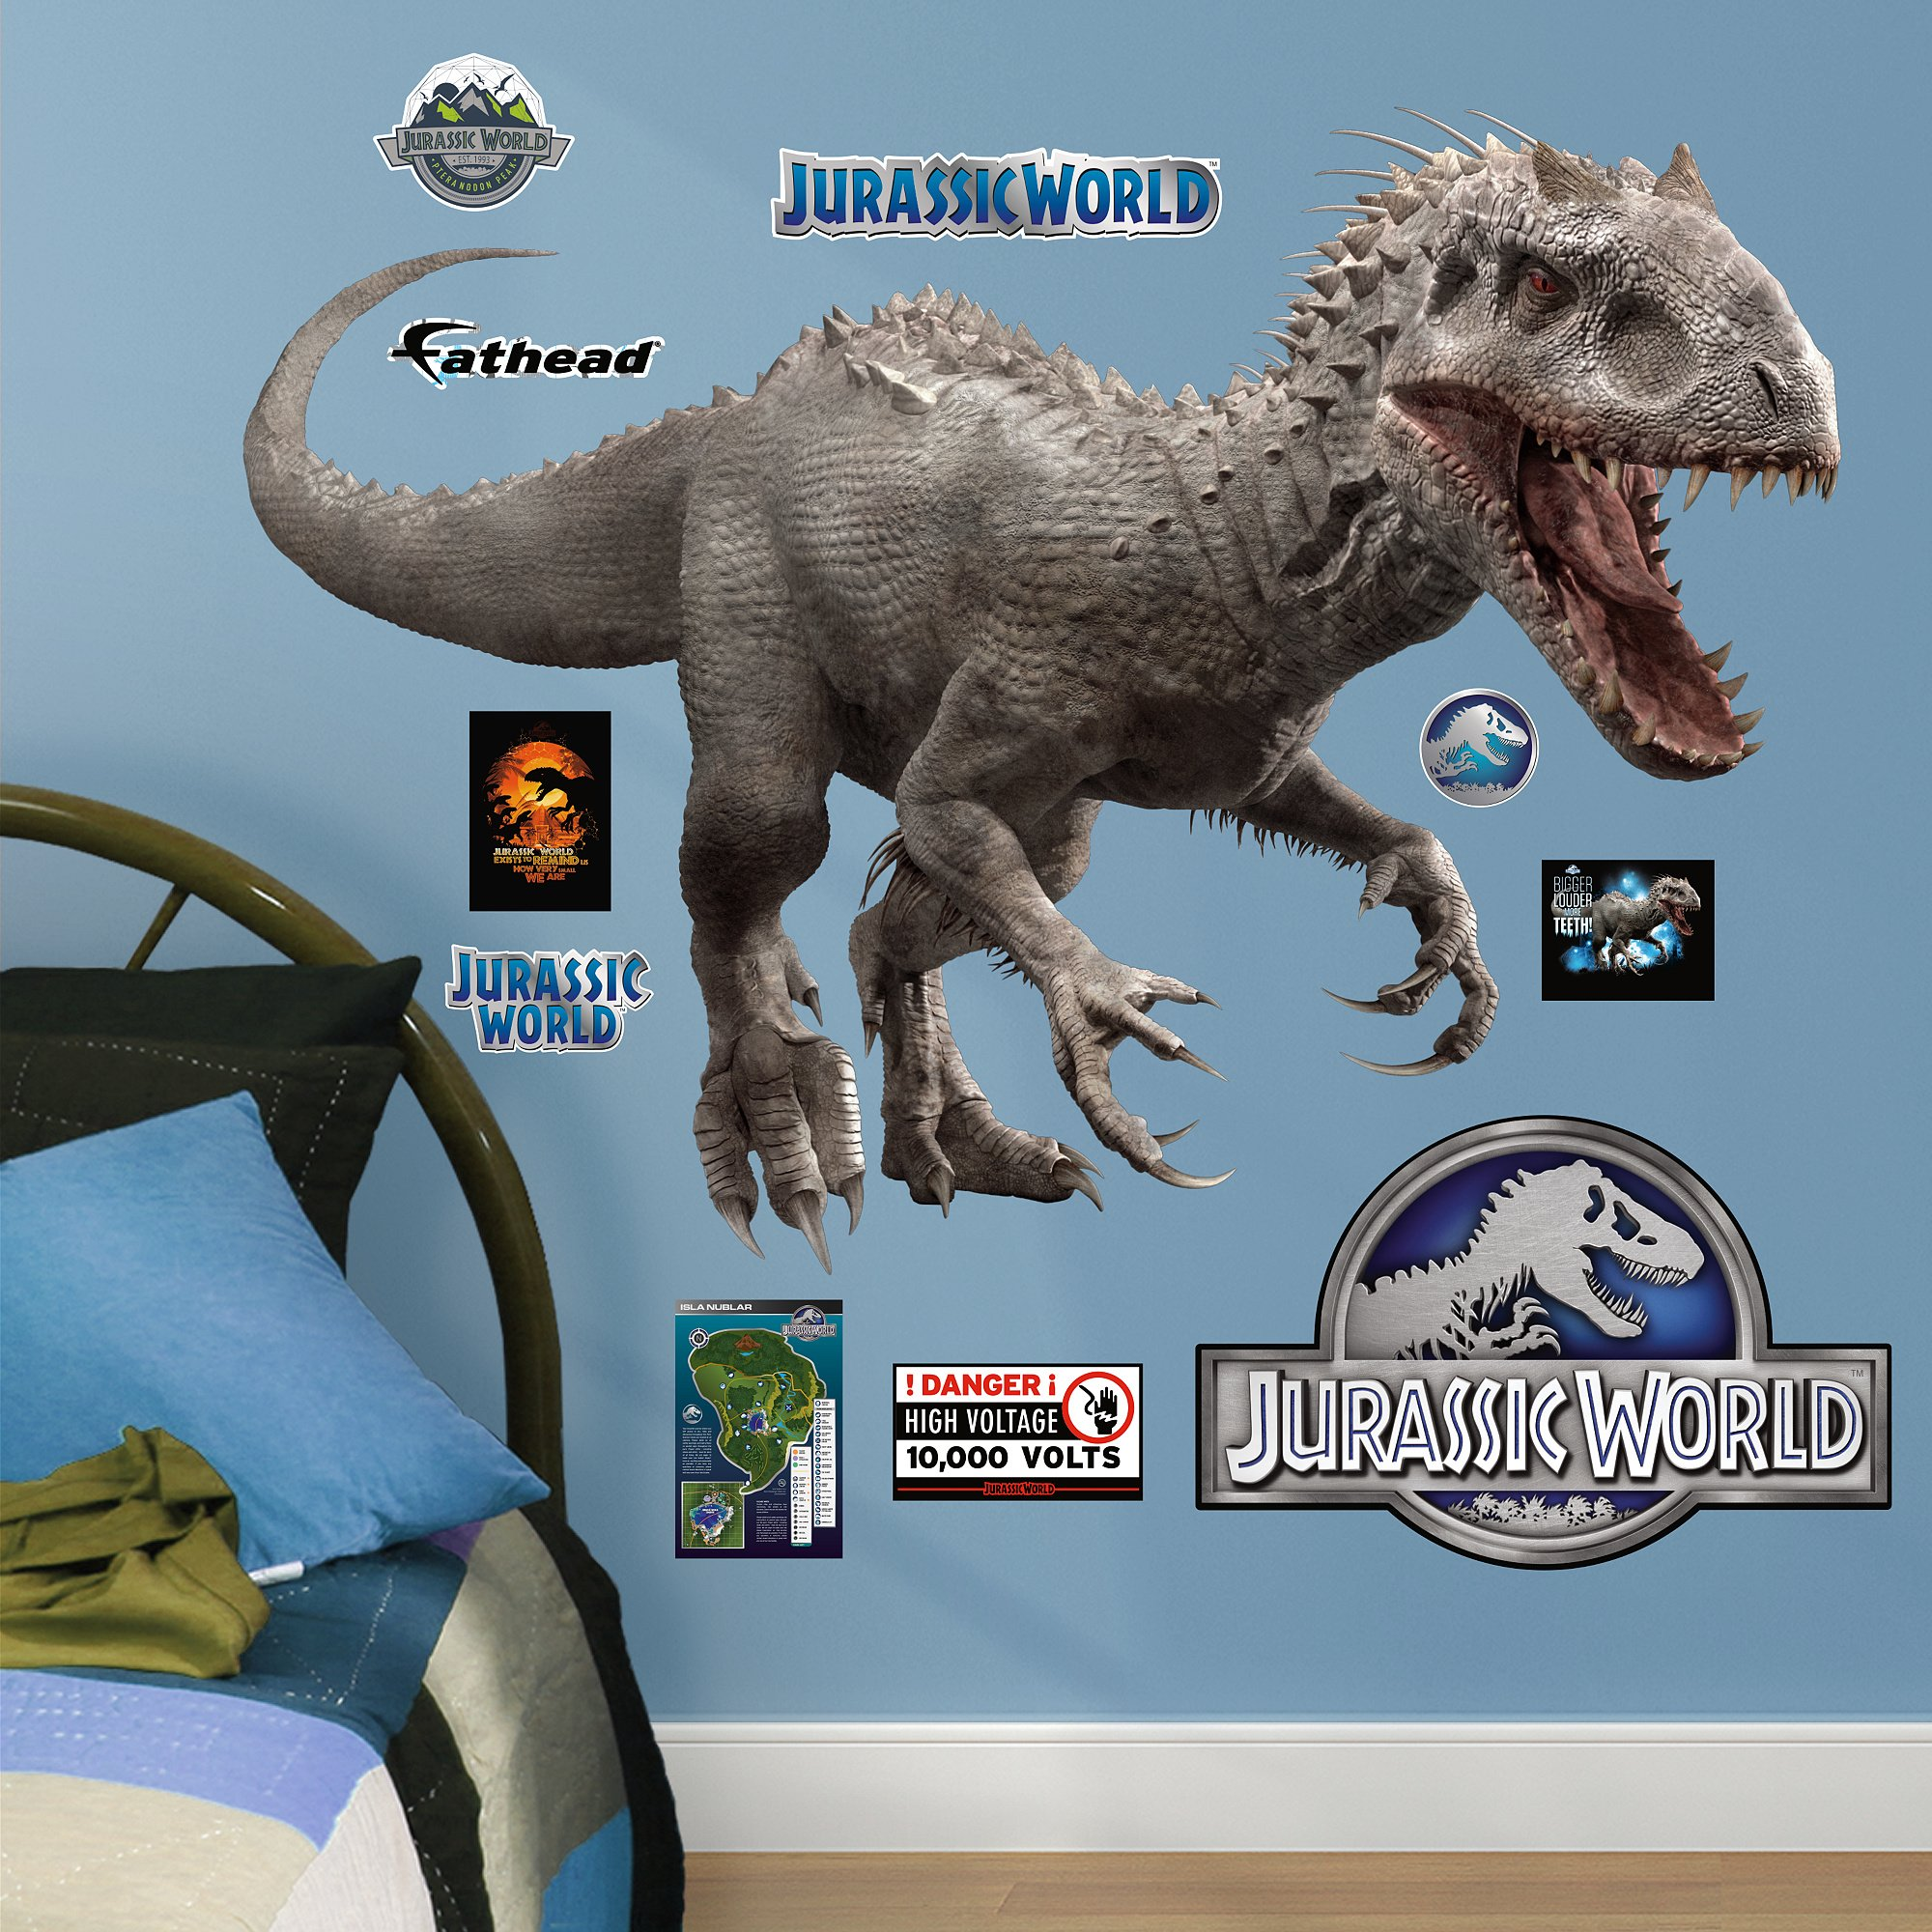 FATHEAD Indominus Rex: Jurassic World - X-Large Officially Licensed Removable Wall Decal by FATHEAD (Image #1)